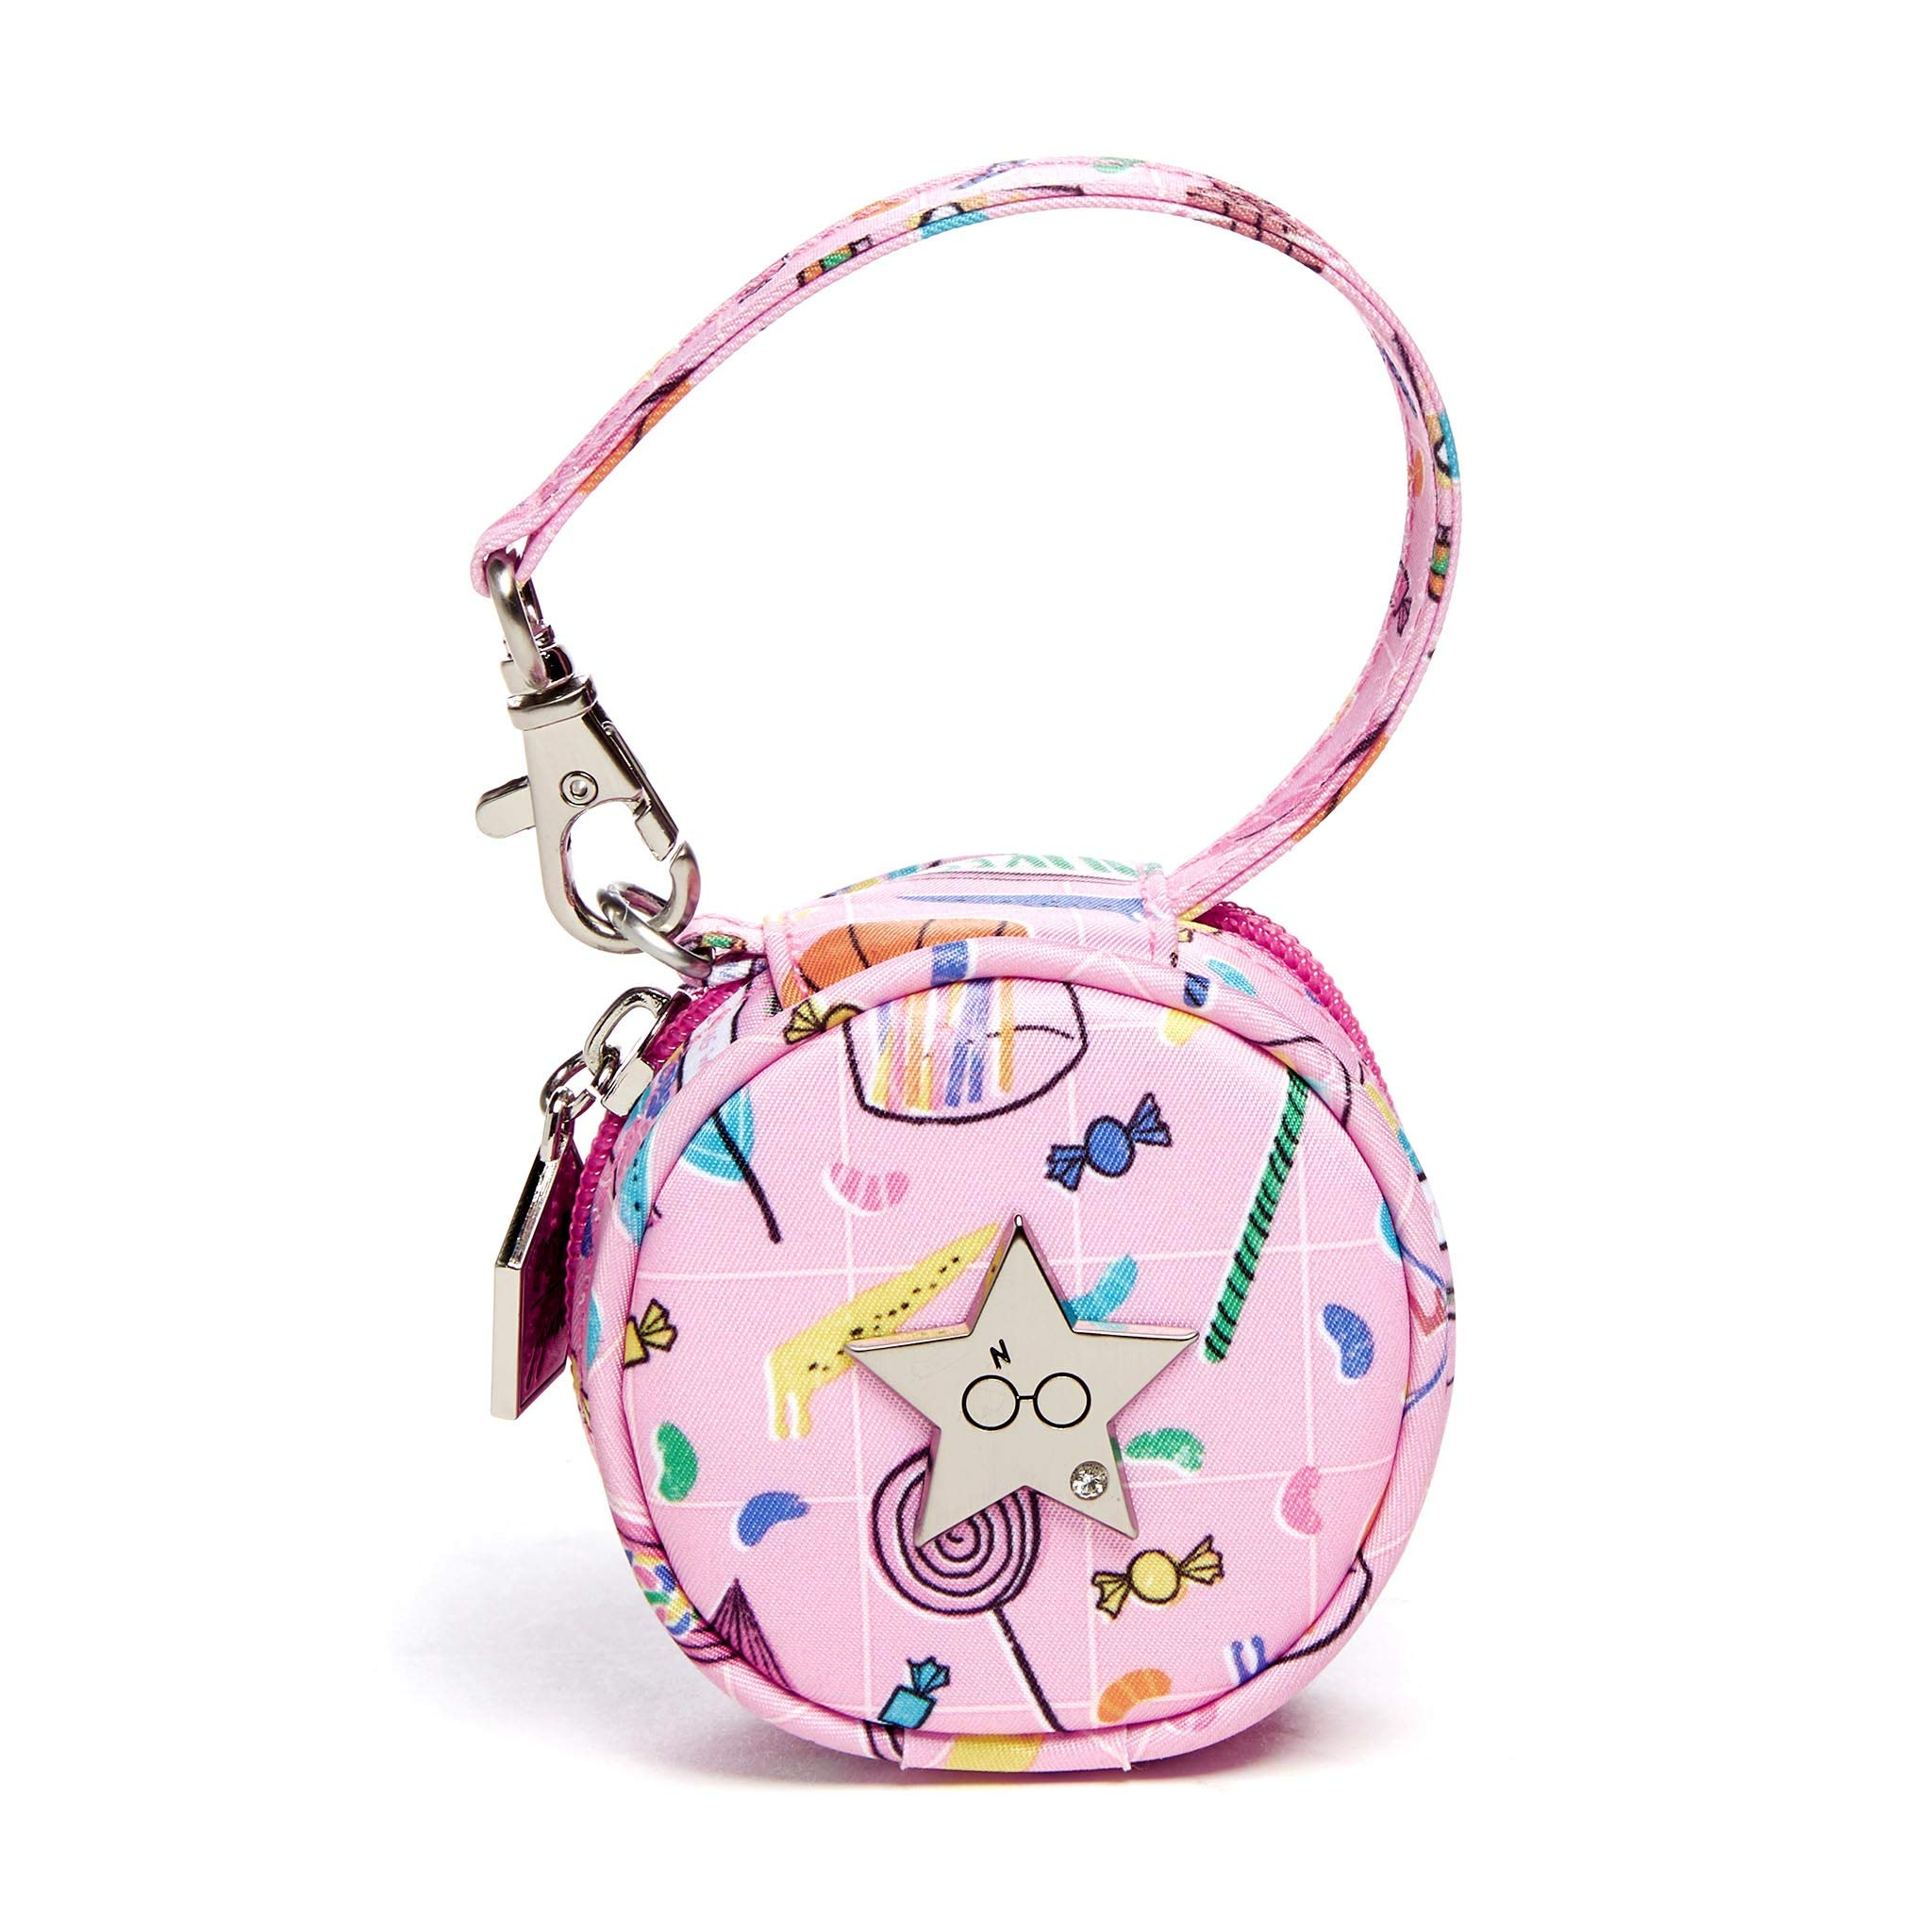 JuJuBe x Harry Potter Paci Pod Pacifier Wristlet with Clip + Strap to Attach to Stroller, Diaper Bag, or Purse   Stylish, Easily Attachable Pacifier Holder   Honeydukes